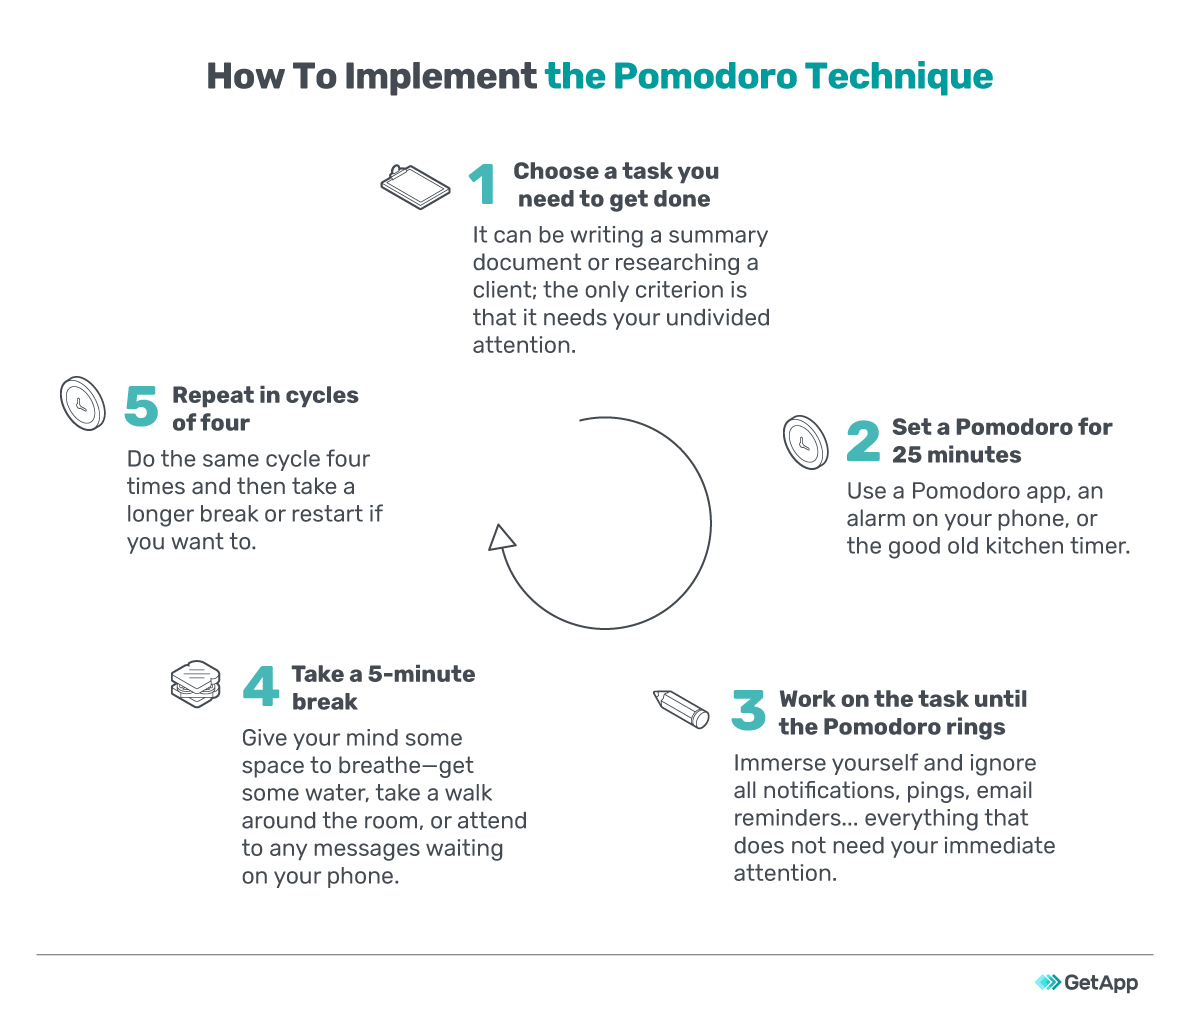 How to implement the Pomodoro technique